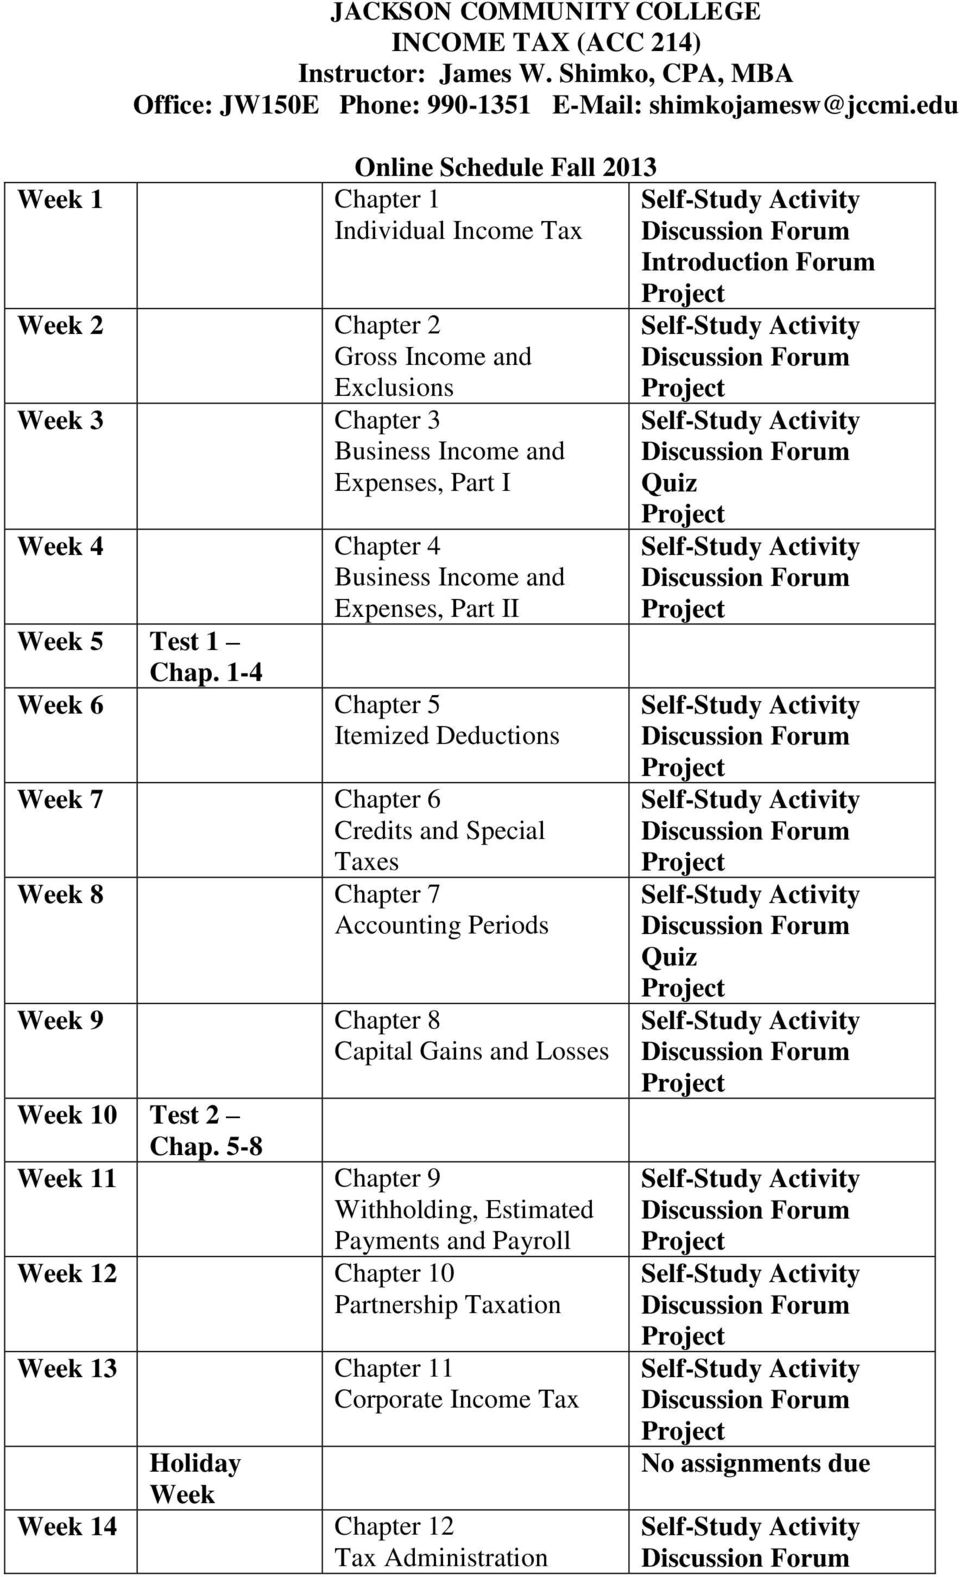 1-4 Week 6 Chapter 5 Itemized Deductions Week 7 Chapter 6 Credits and Special Taxes Week 8 Chapter 7 Accounting Periods Week 9 Chapter 8 Capital Gains and Losses Week